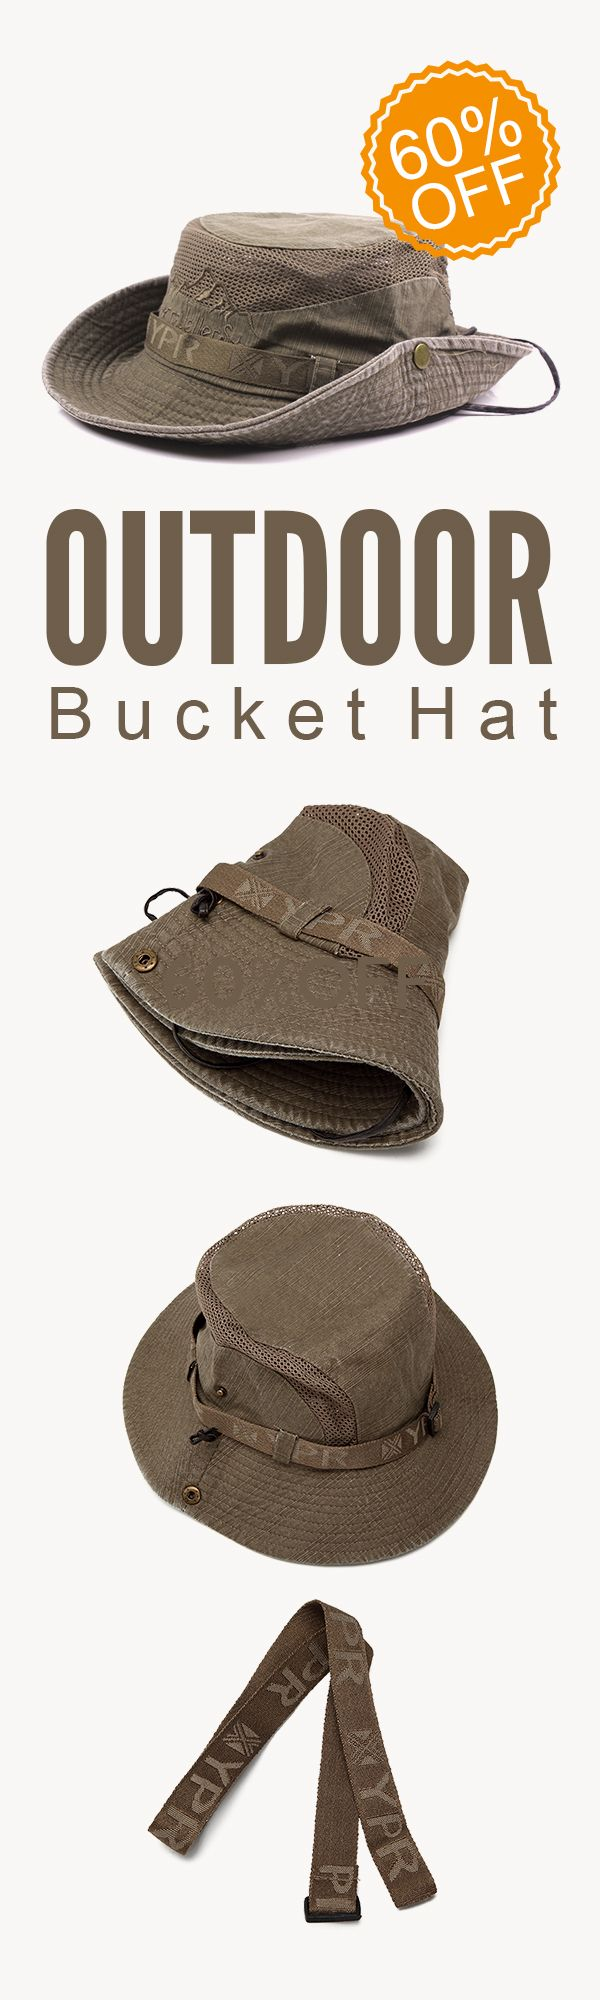 60%OFF&Free shipping. Outdoor Bucket Hat, Fisherman Hat, Sunshade Cap, Outdoor, Climbing, Mesh, Breathable. Shop now~